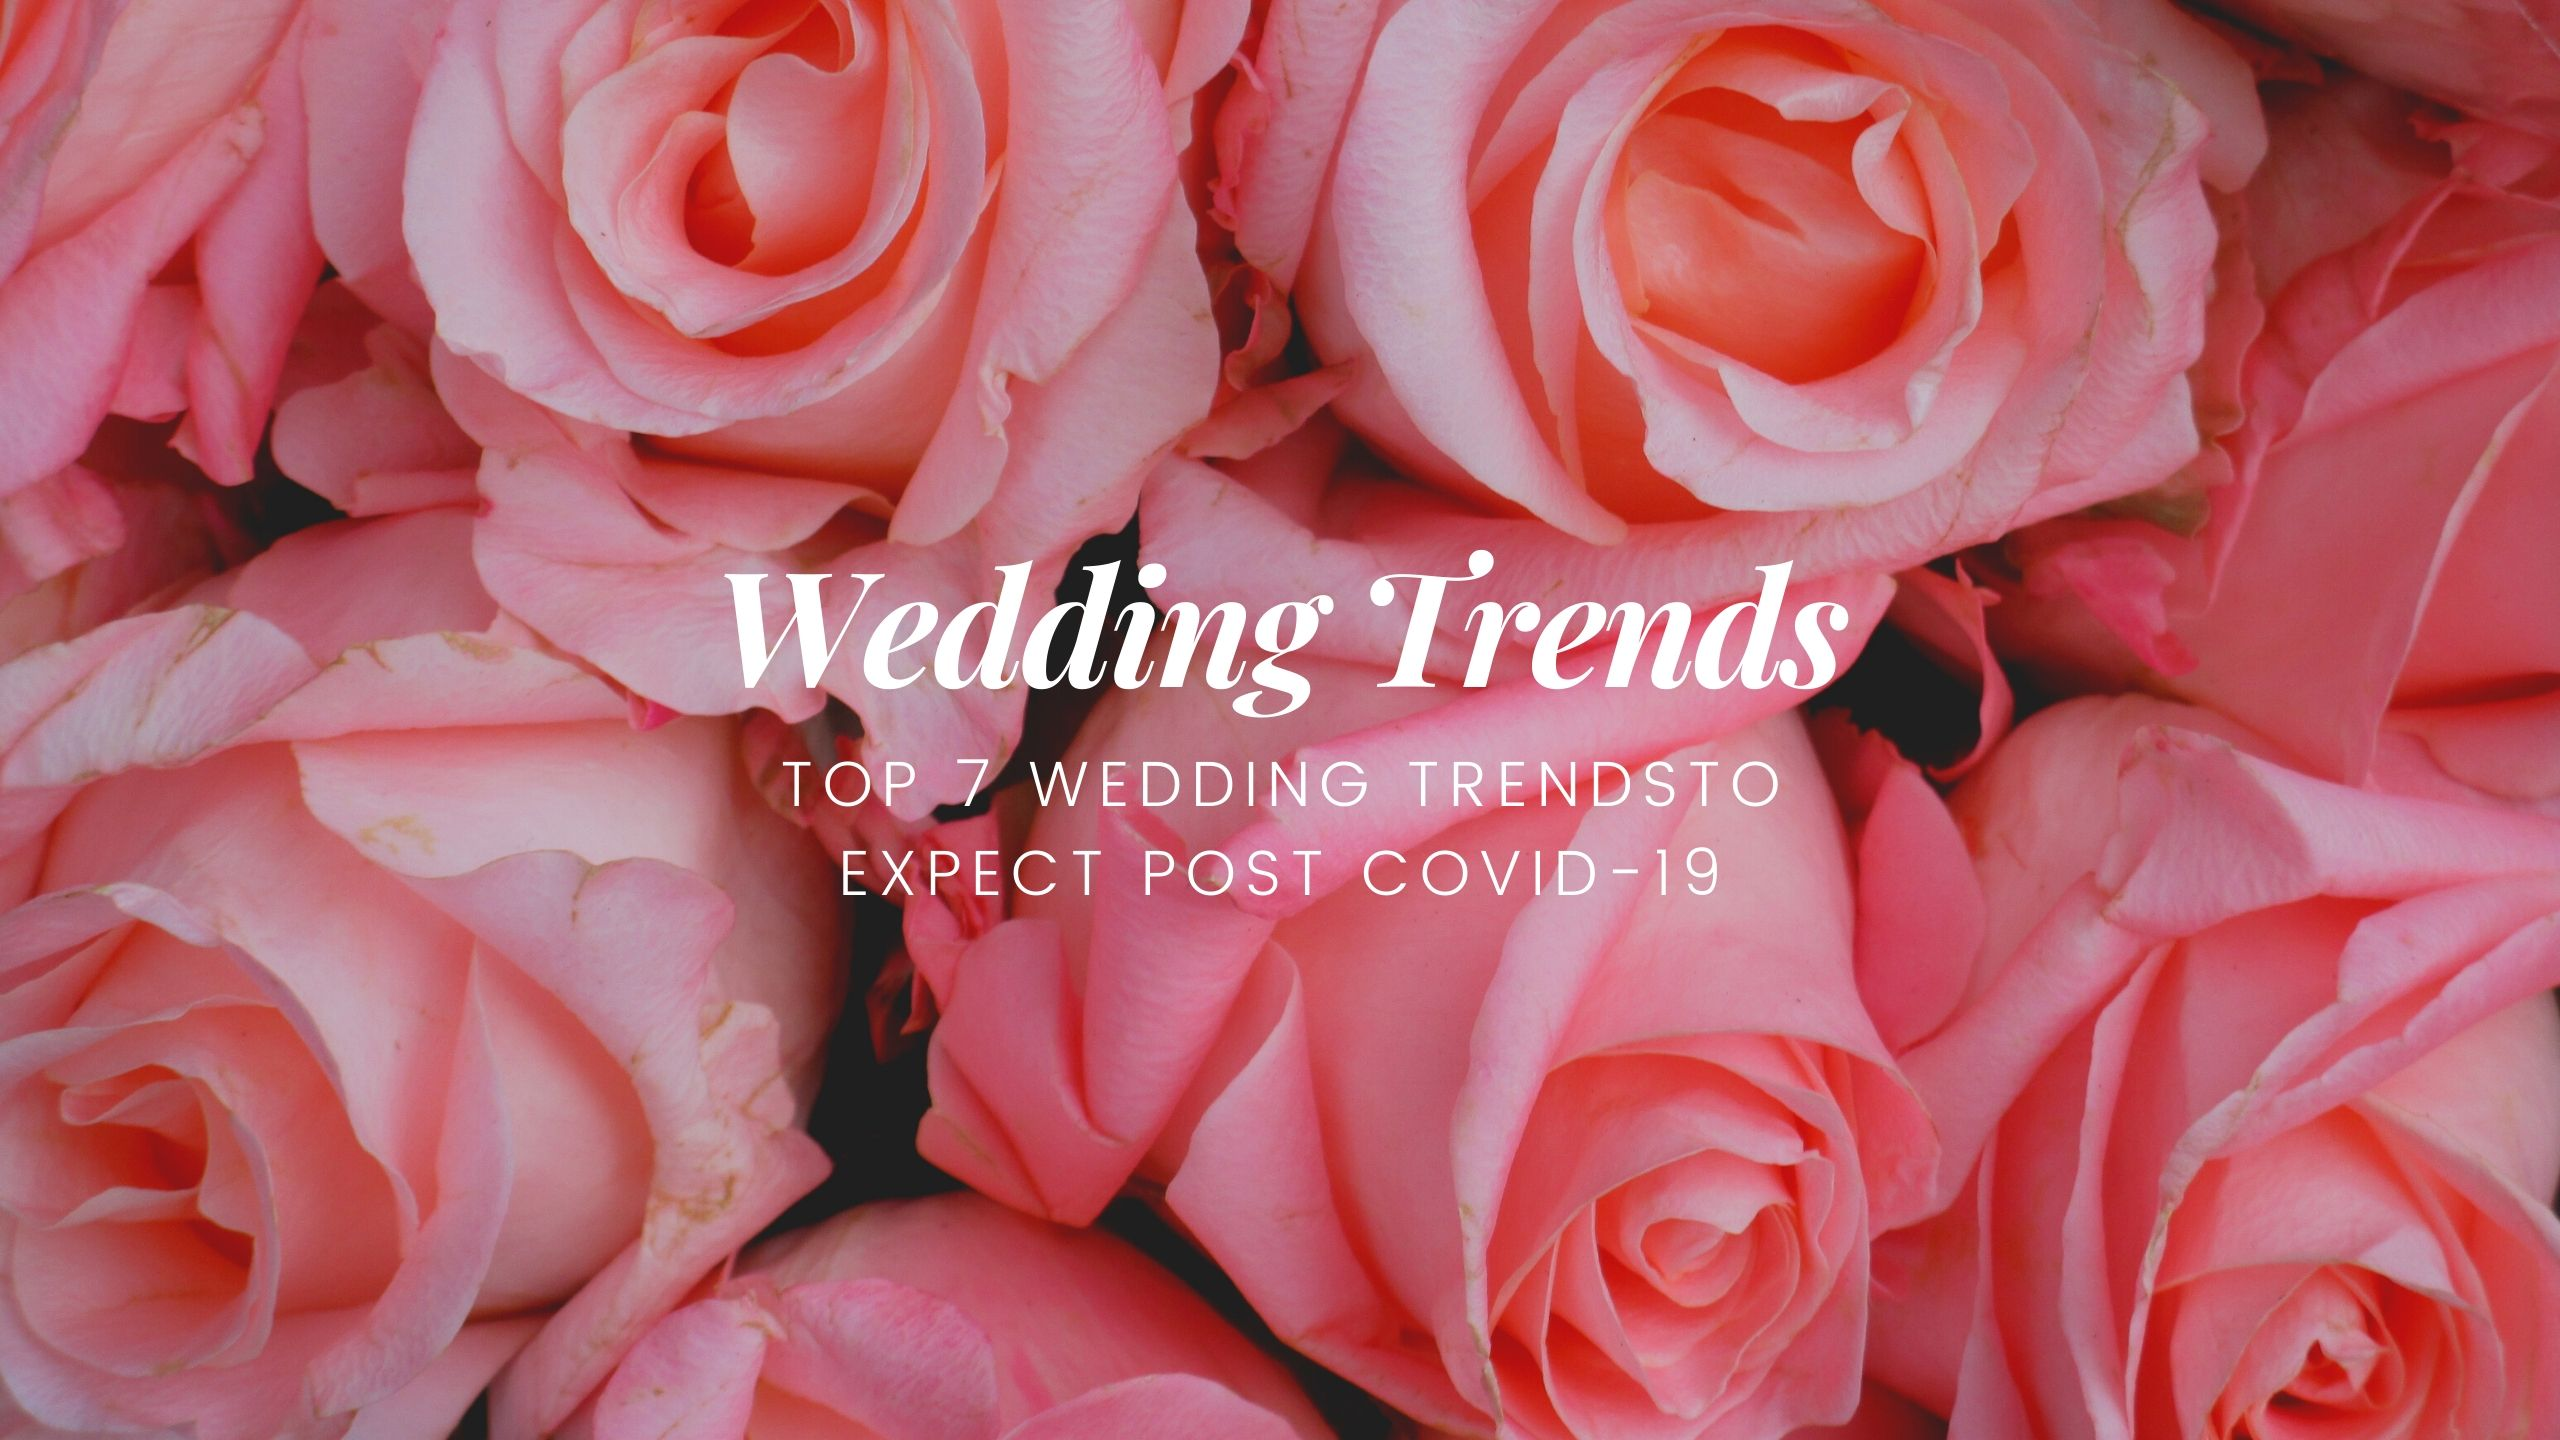 Top 7 Wedding Trends to expect Post Covid-19